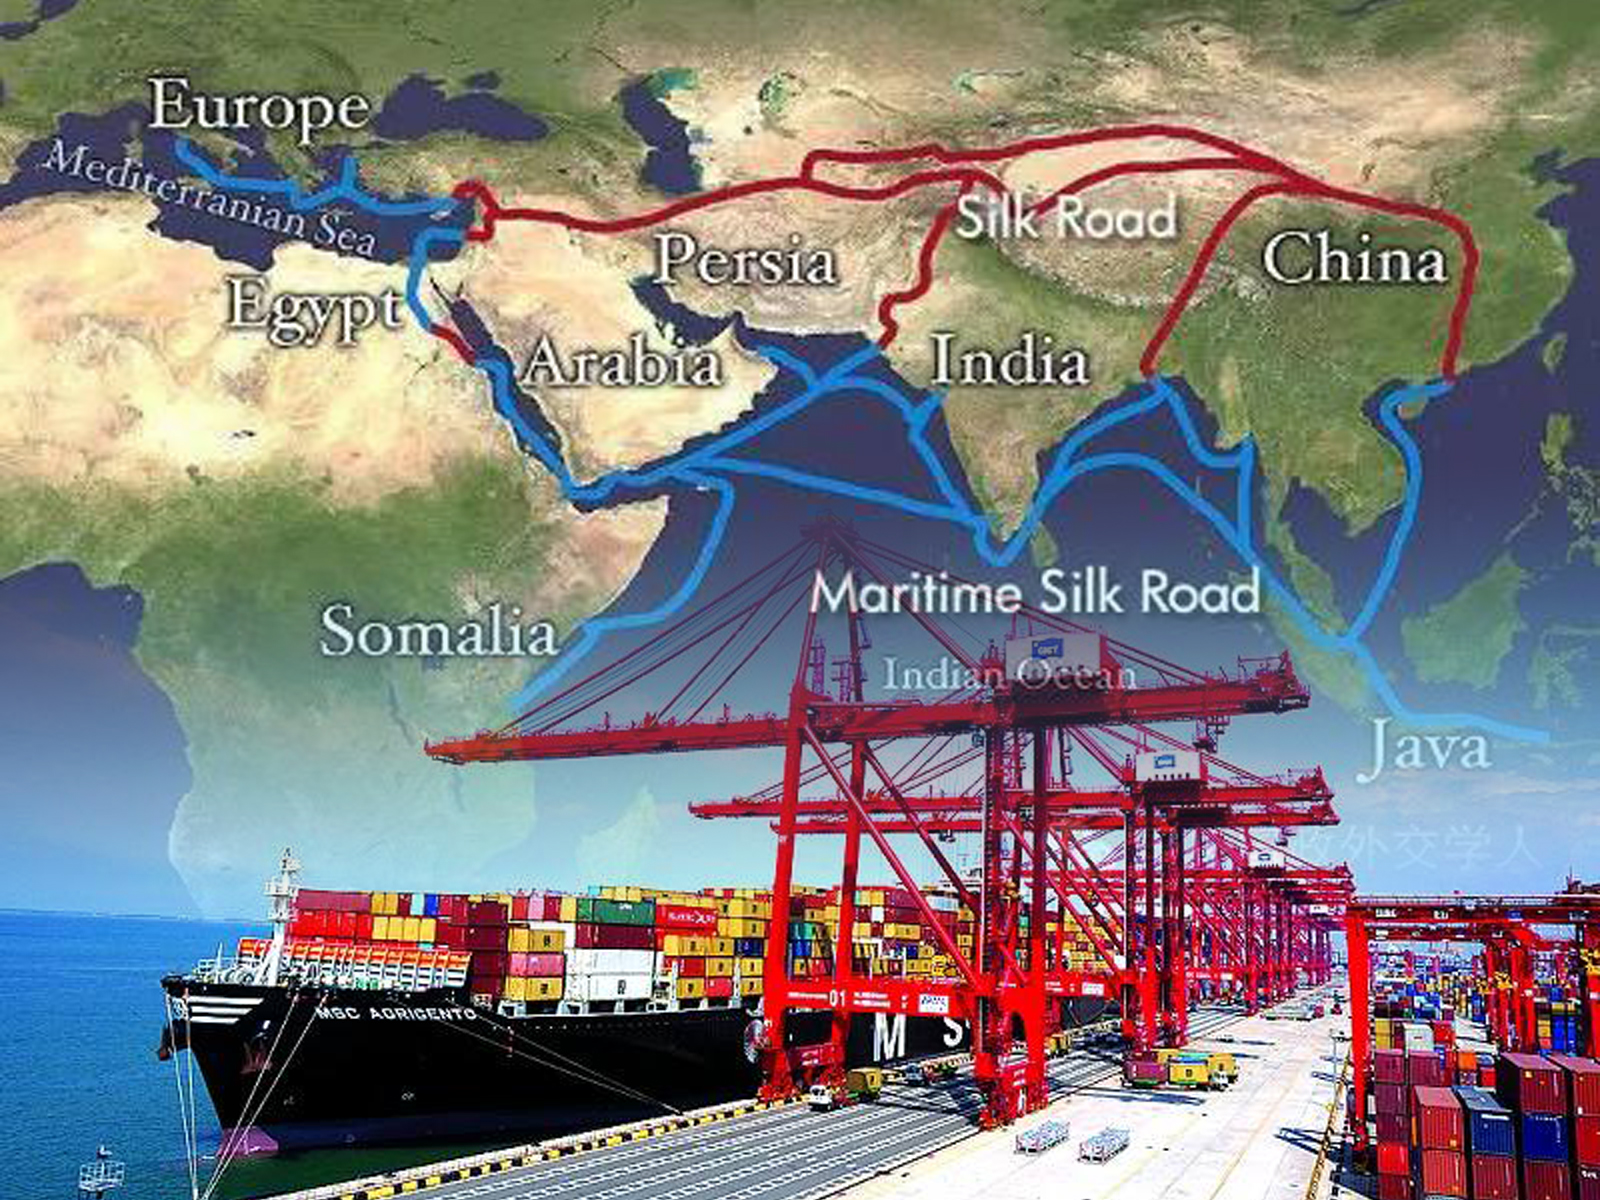 Support Port Enterprises to Go Global and Flesh Out the Layout of Maritime Silk Road Ports